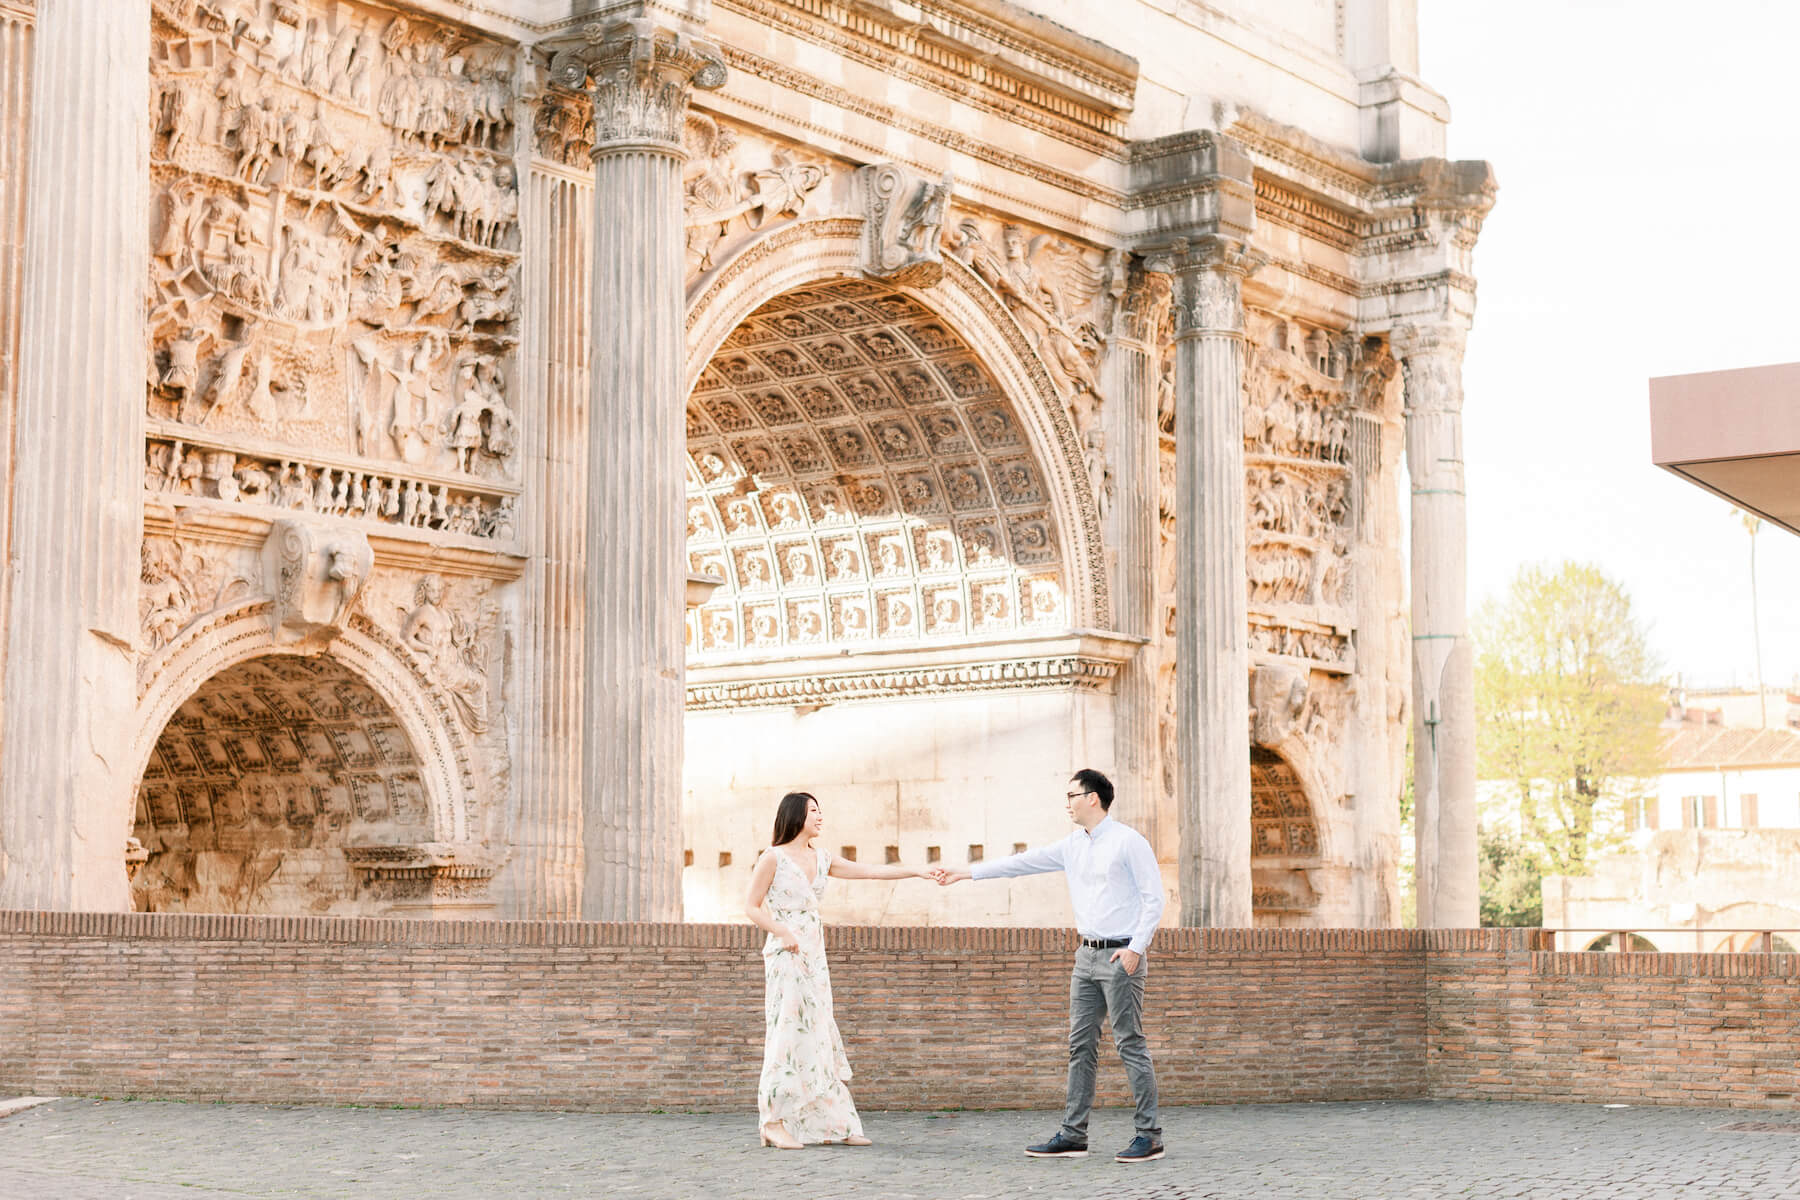 couples trip in Rome, Italy